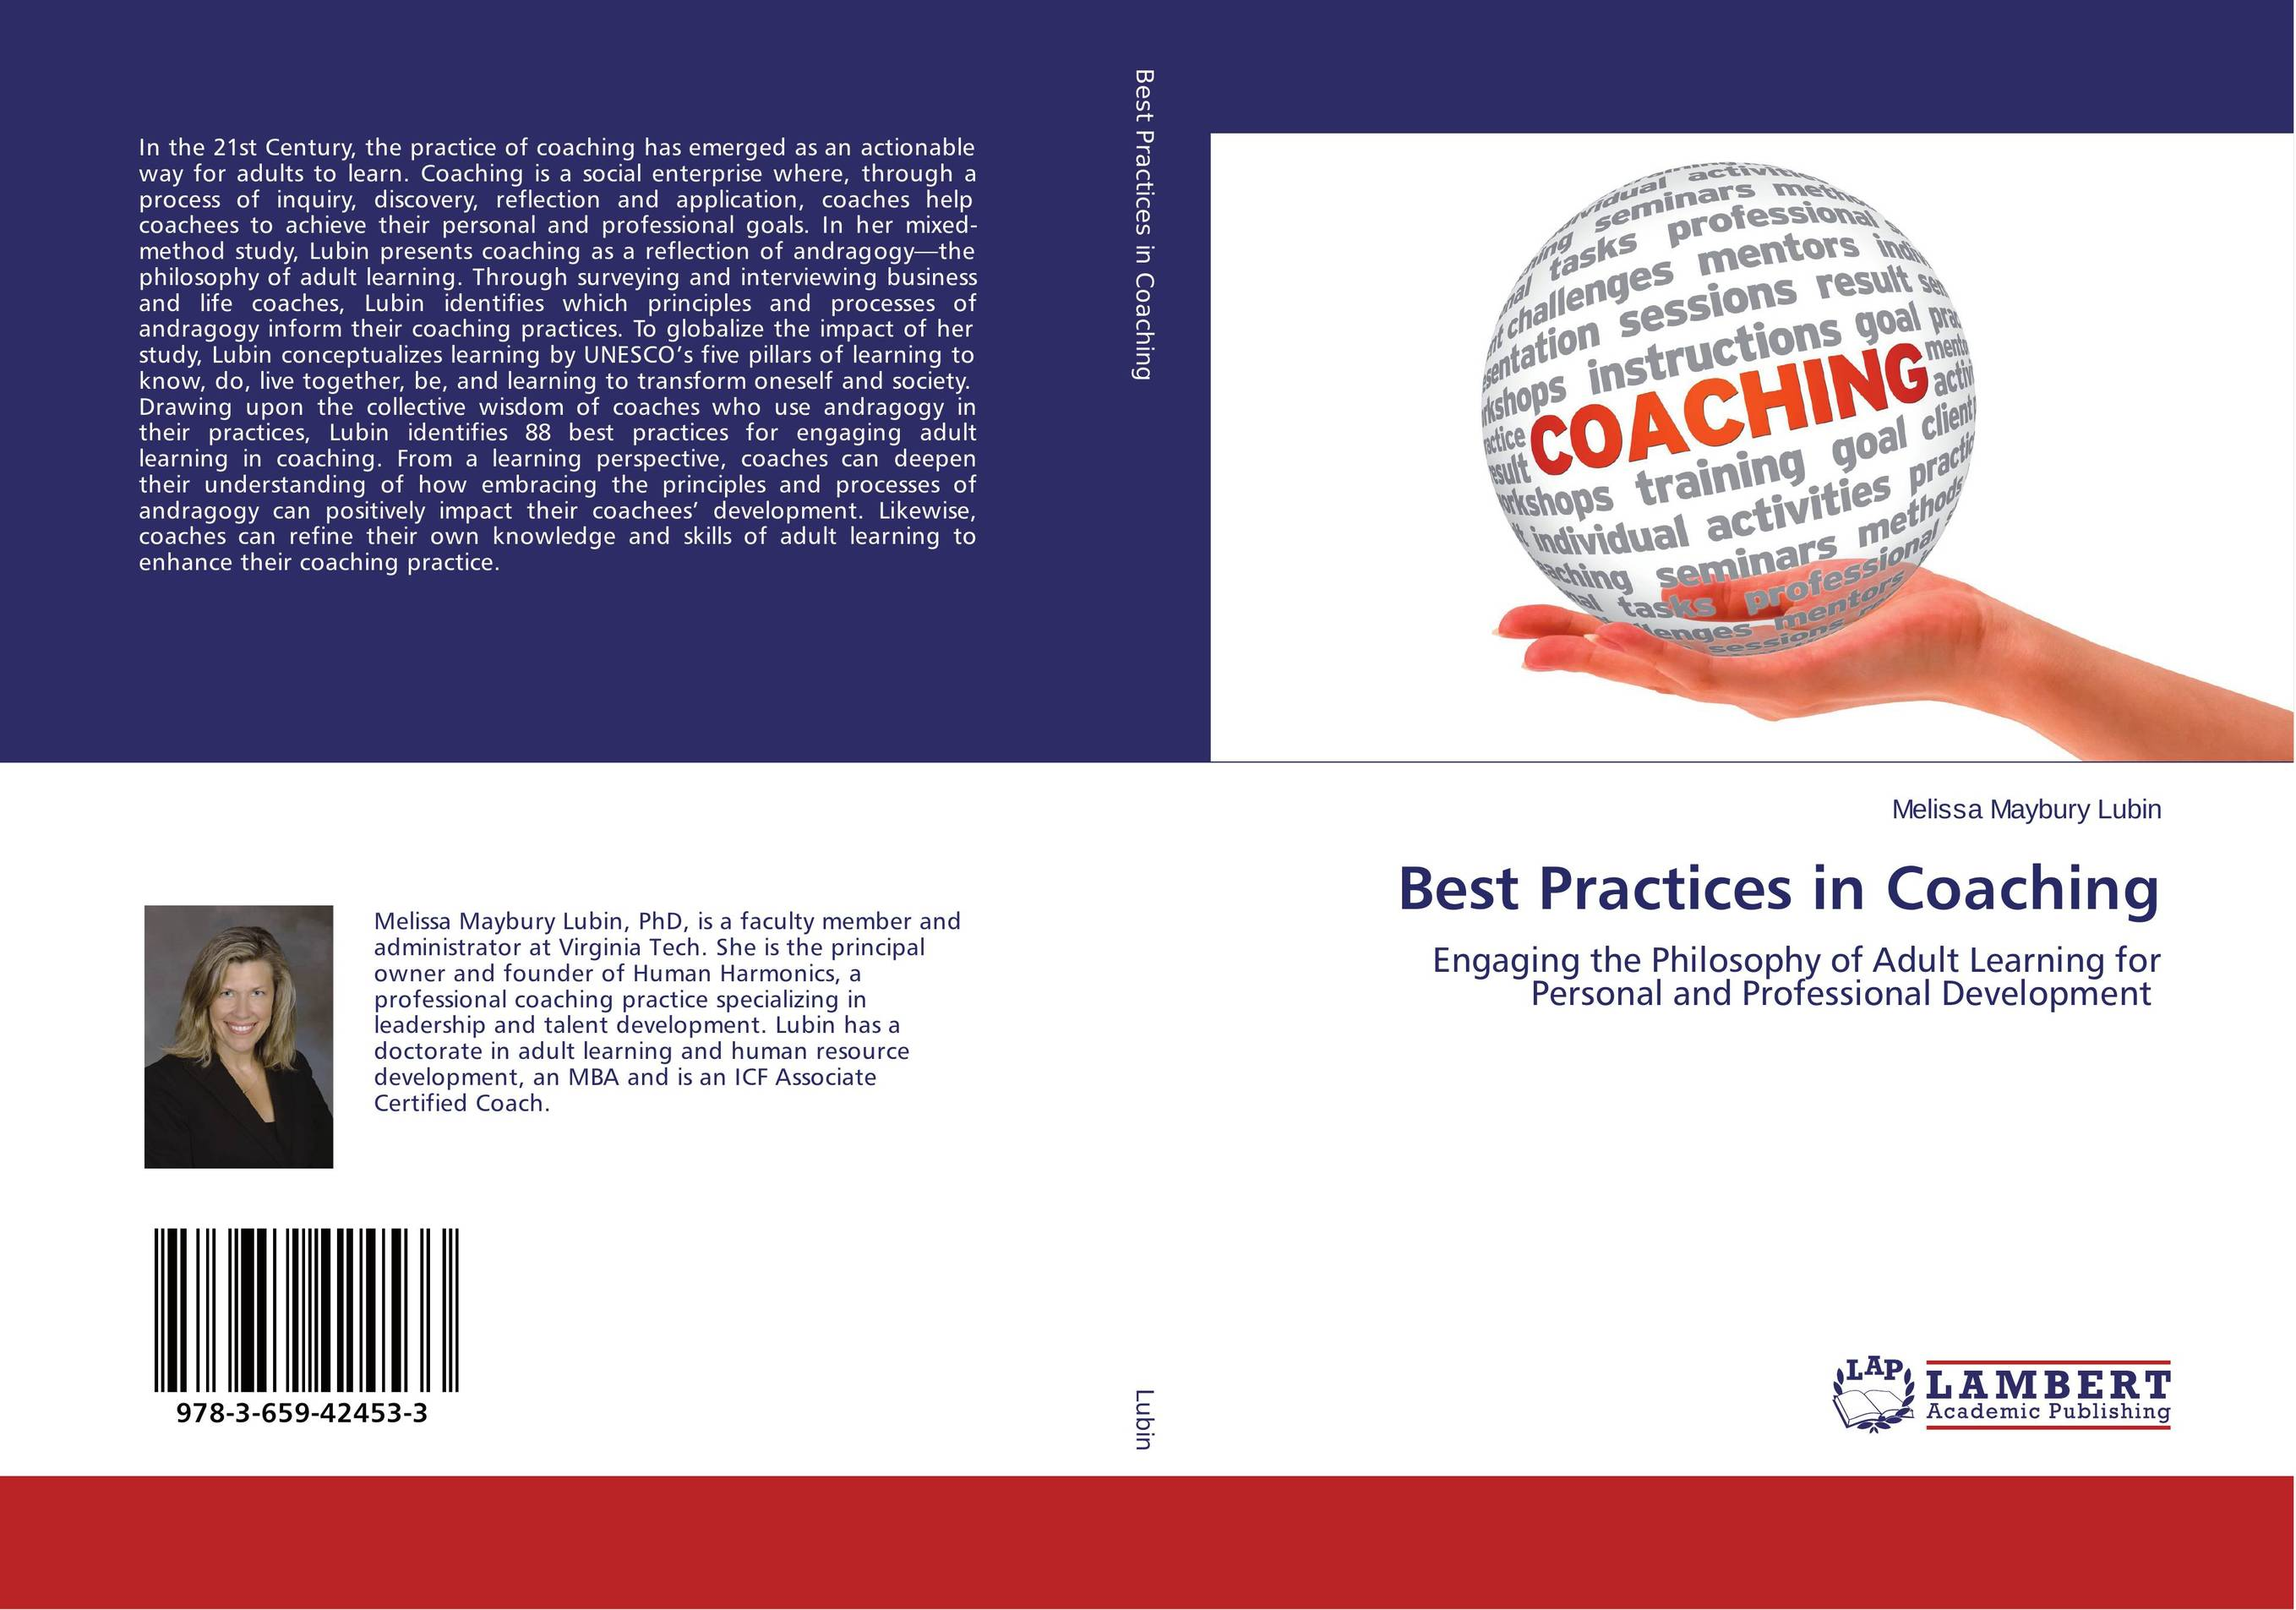 Best Practices in Coaching mcintosh tourism – principles practices philosophies 5ed